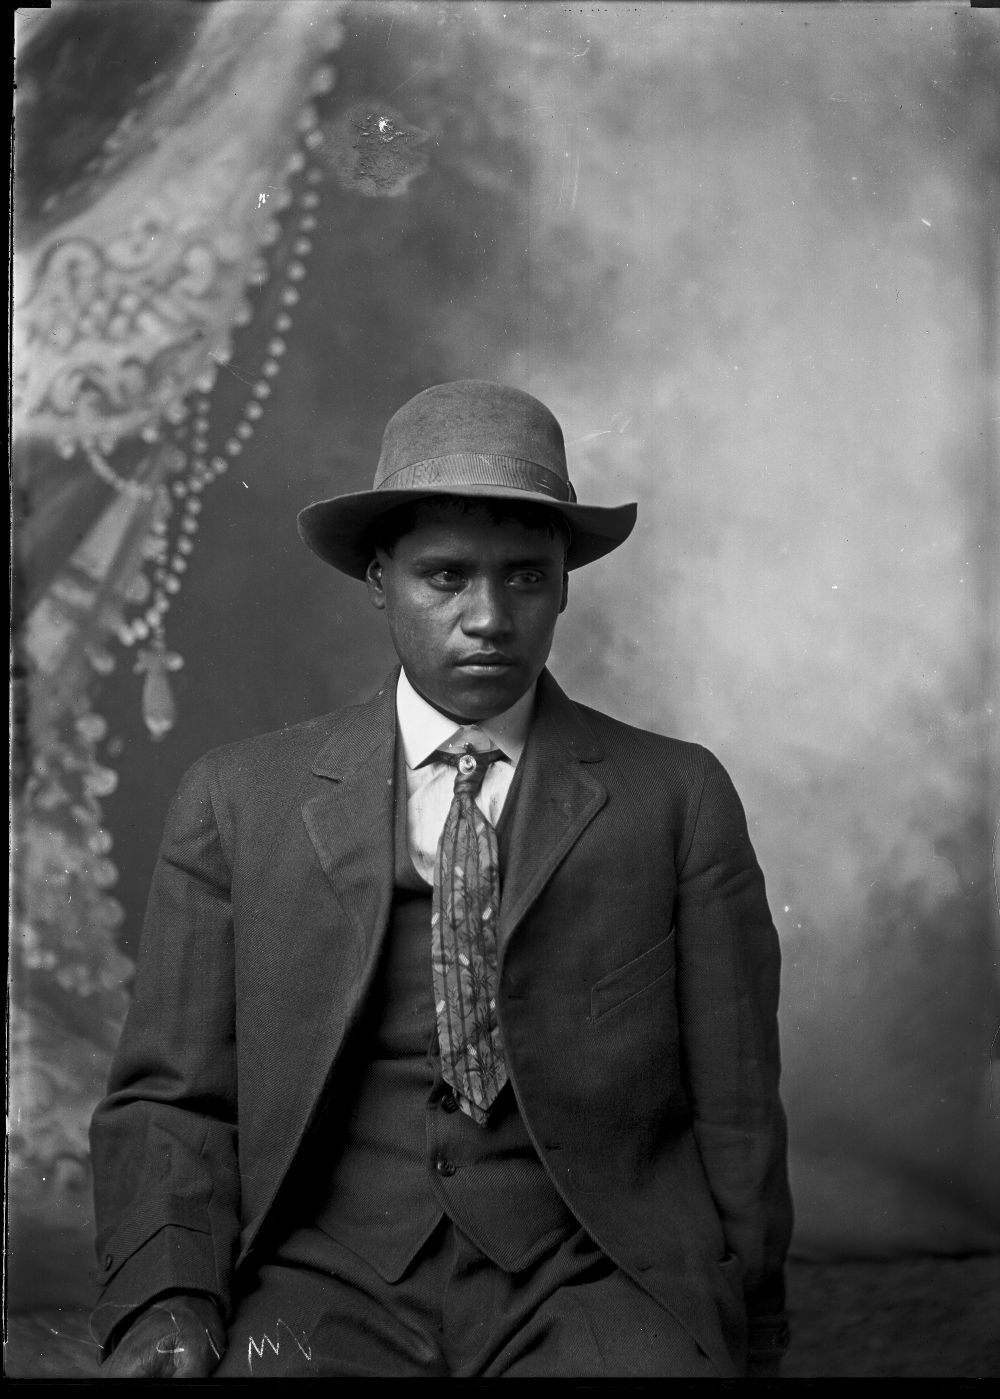 Portrait of a man in a hat and suit